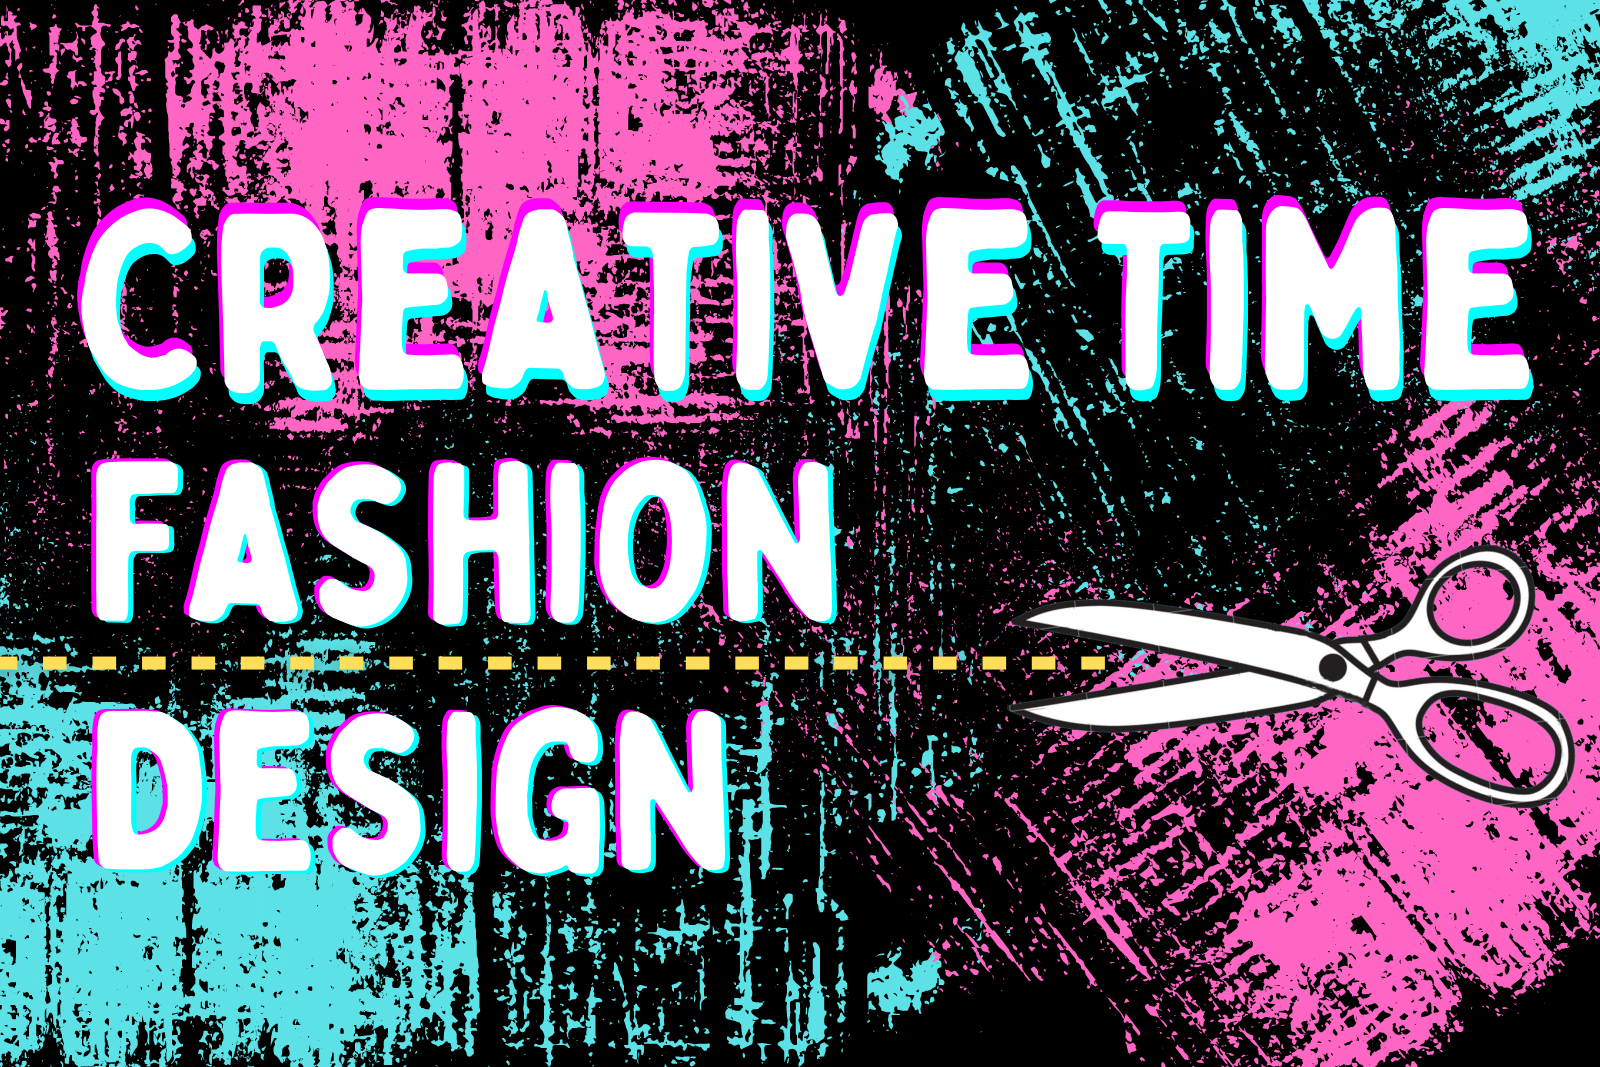 Creative time fashion design graphic with pink and blue bakground and scisorrs illustration following a yellow dotted line